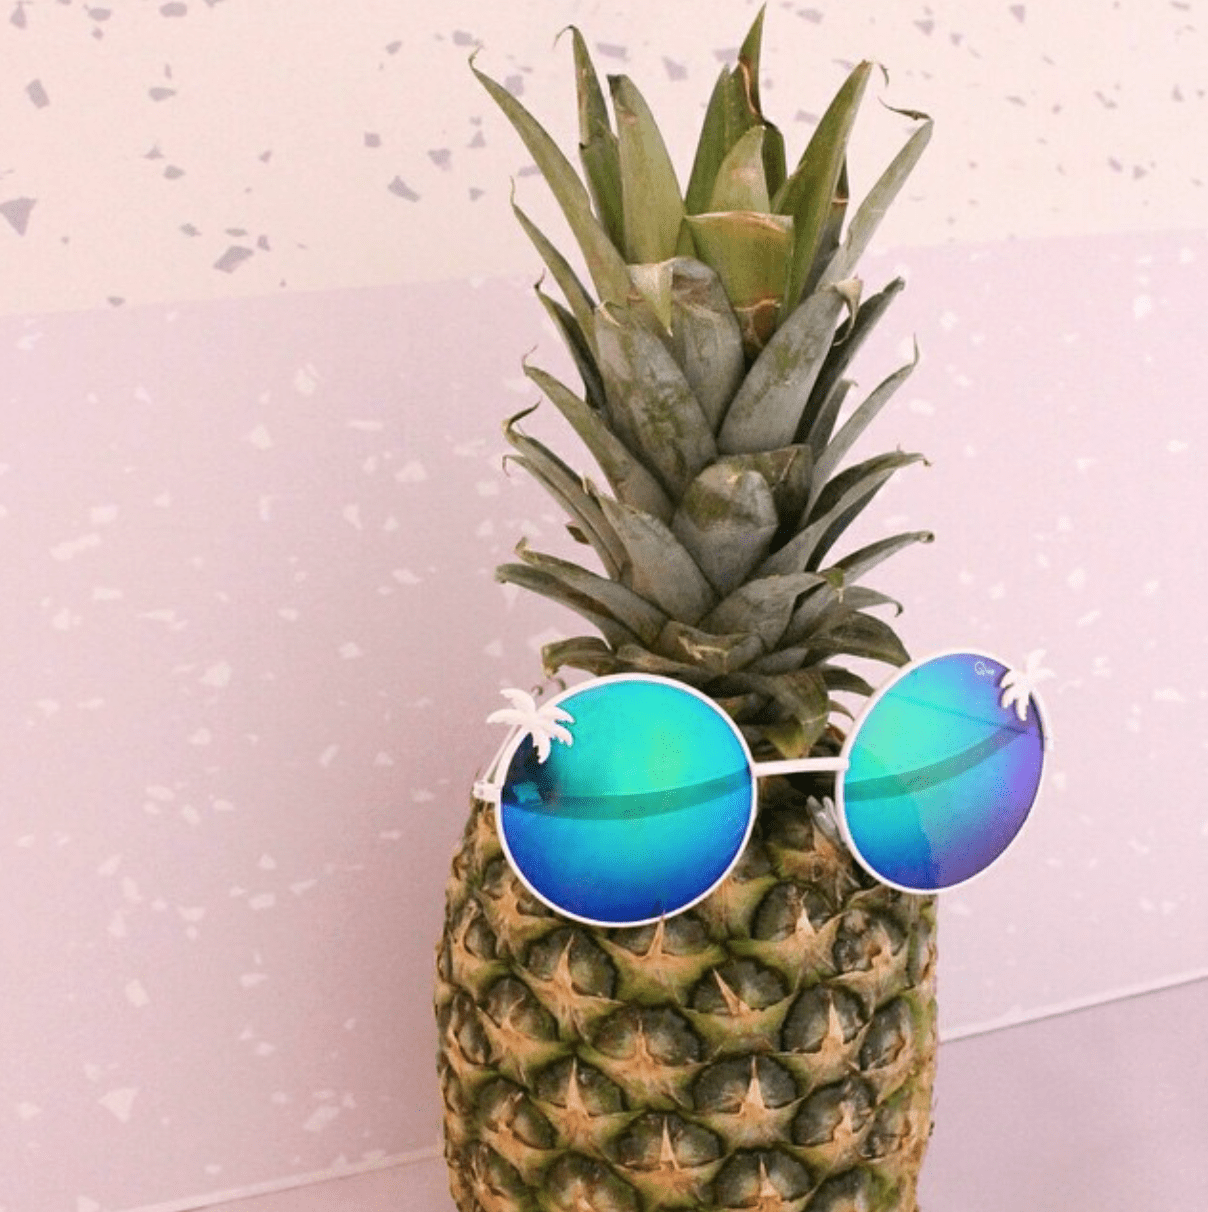 Pineapple With Sunglasses Tumblr Pineapple Wearing Sunglasses Summer Summertime Vibes